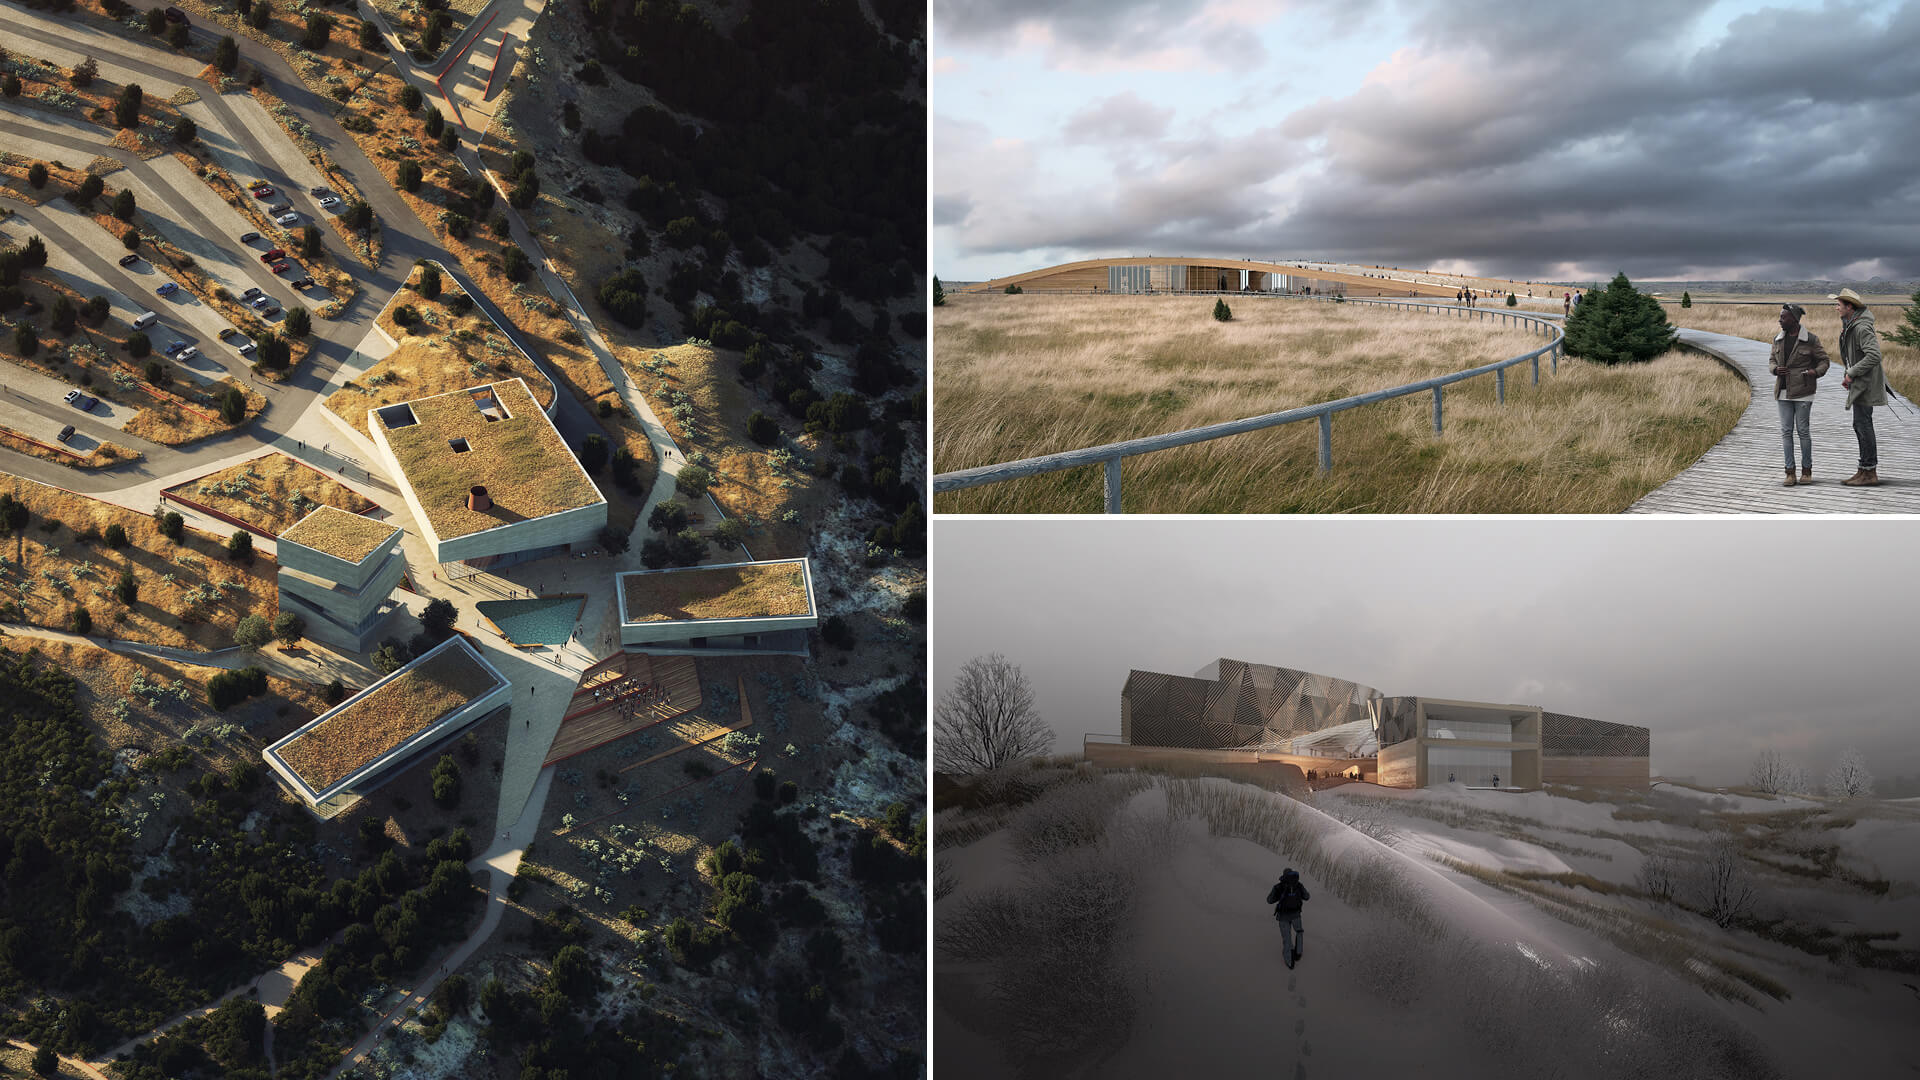 Design proposals for Theodore Roosevelt Presidential Library by Henning Larsen, Studio Gang and Snøhetta respectively | STIRworld